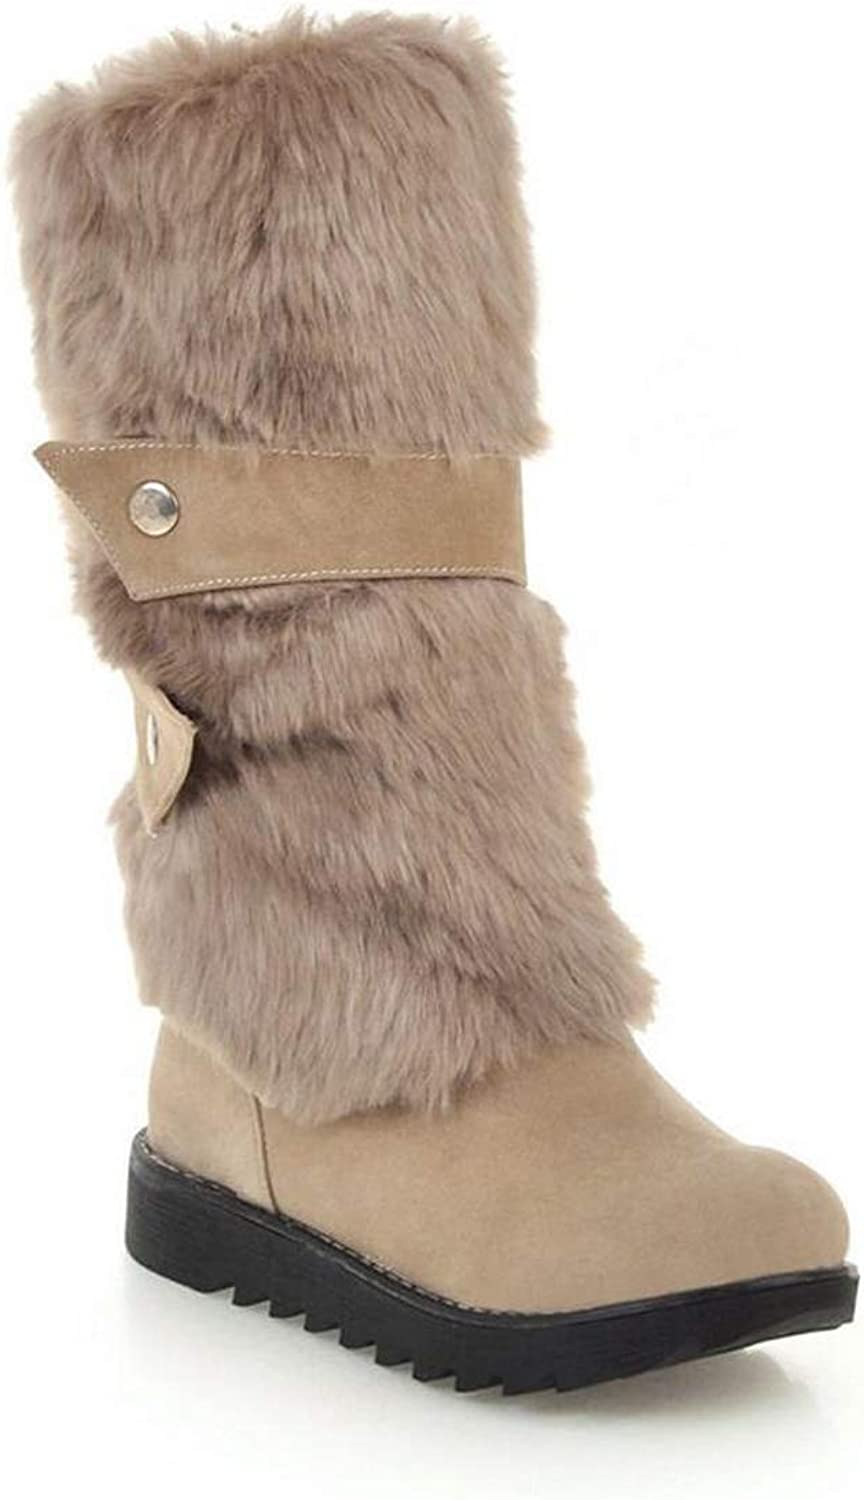 Womens Ladies Flat Knee High Calf Winter Snow Warm Lined Ankle Boots No-Slip Sole Size (Black Brown Beige)